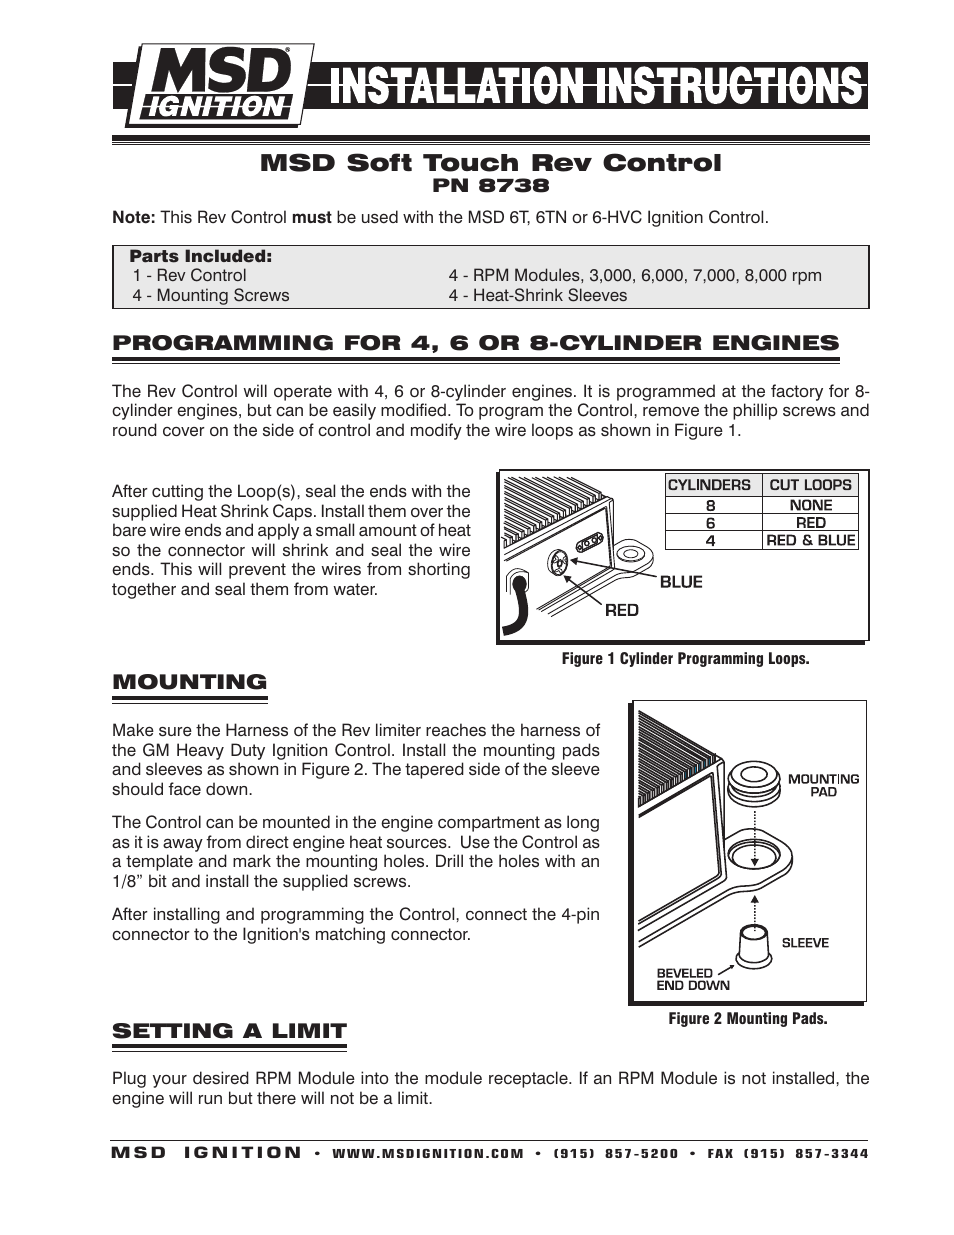 msd 8738 soft touch rev control for use with msd 6t installation page1 msd 8738 soft touch rev control for use with msd 6t installation MSD 8728 Wiring-Diagram at readyjetset.co